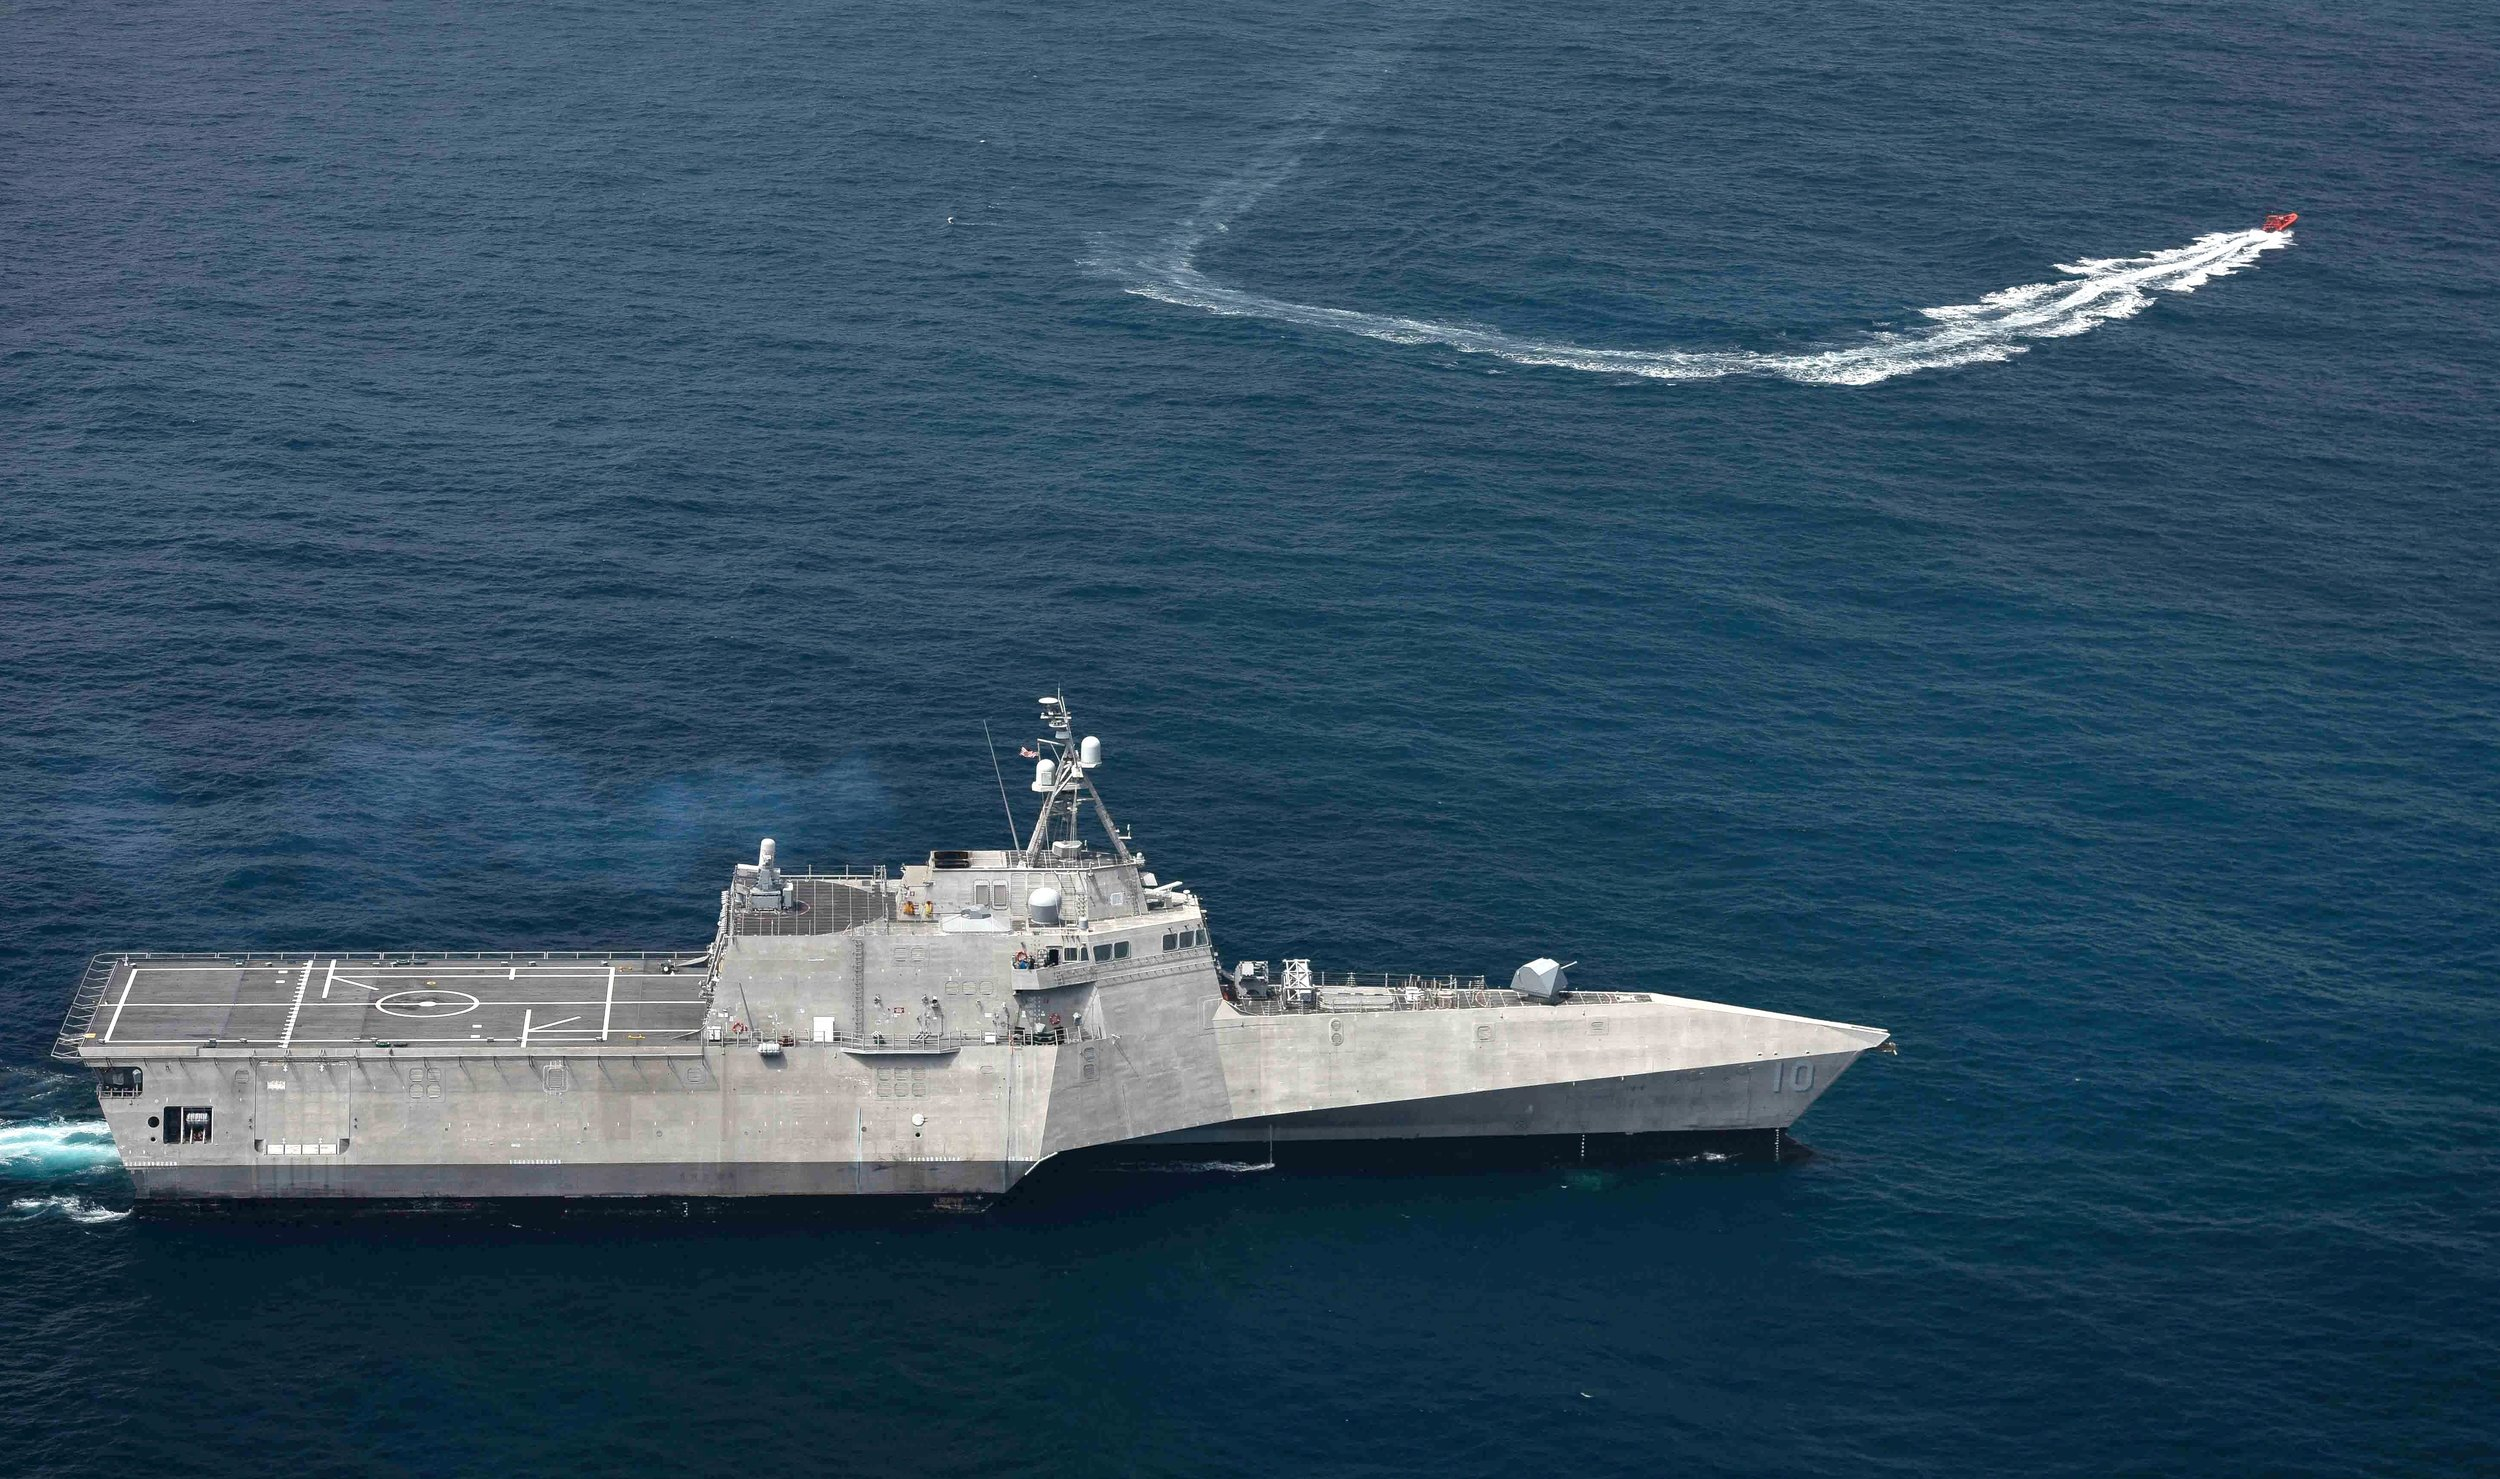 USS Gabrielle Giffords (LCS-10) maneuvers to deter an unmanned vessel during a small boat attack exercise on July 26, 2019. Gabrielle Giffords is conducting routine operations in the Eastern Pacific Ocean. US Navy Photo